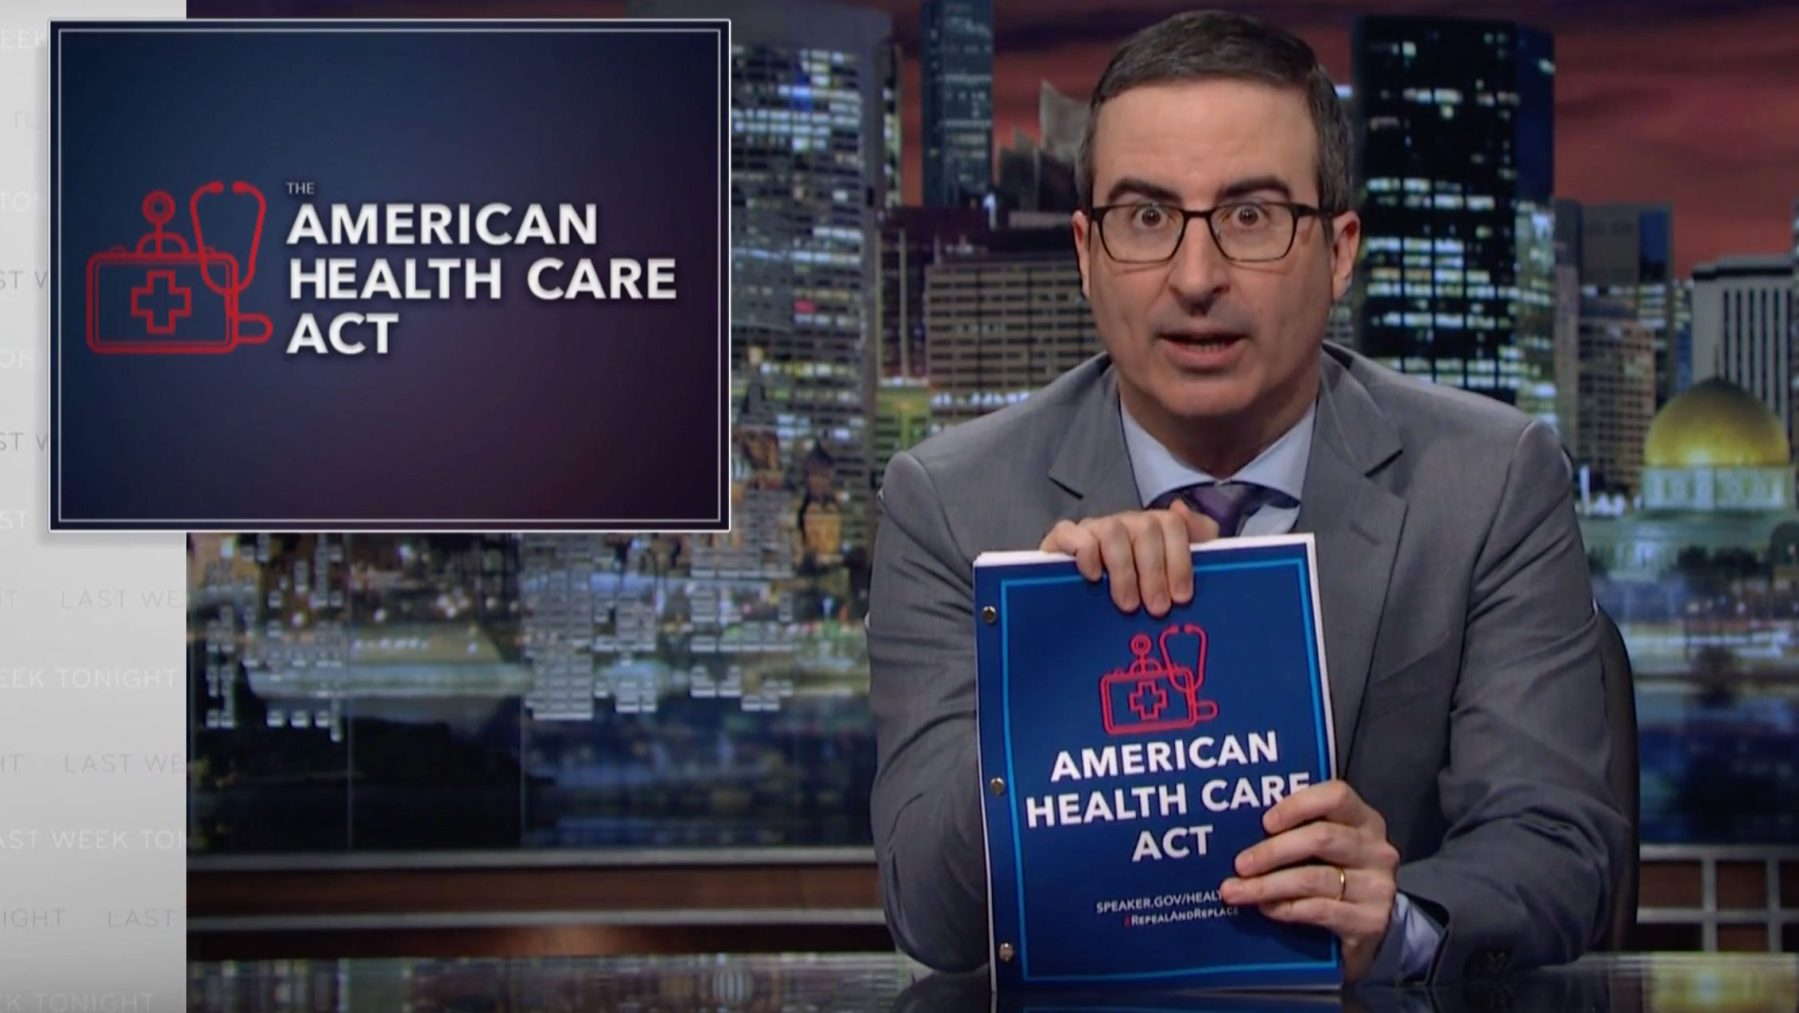 John Oliver Buys 'Fox and Friends' Ads to Reach President Trump on AHCA